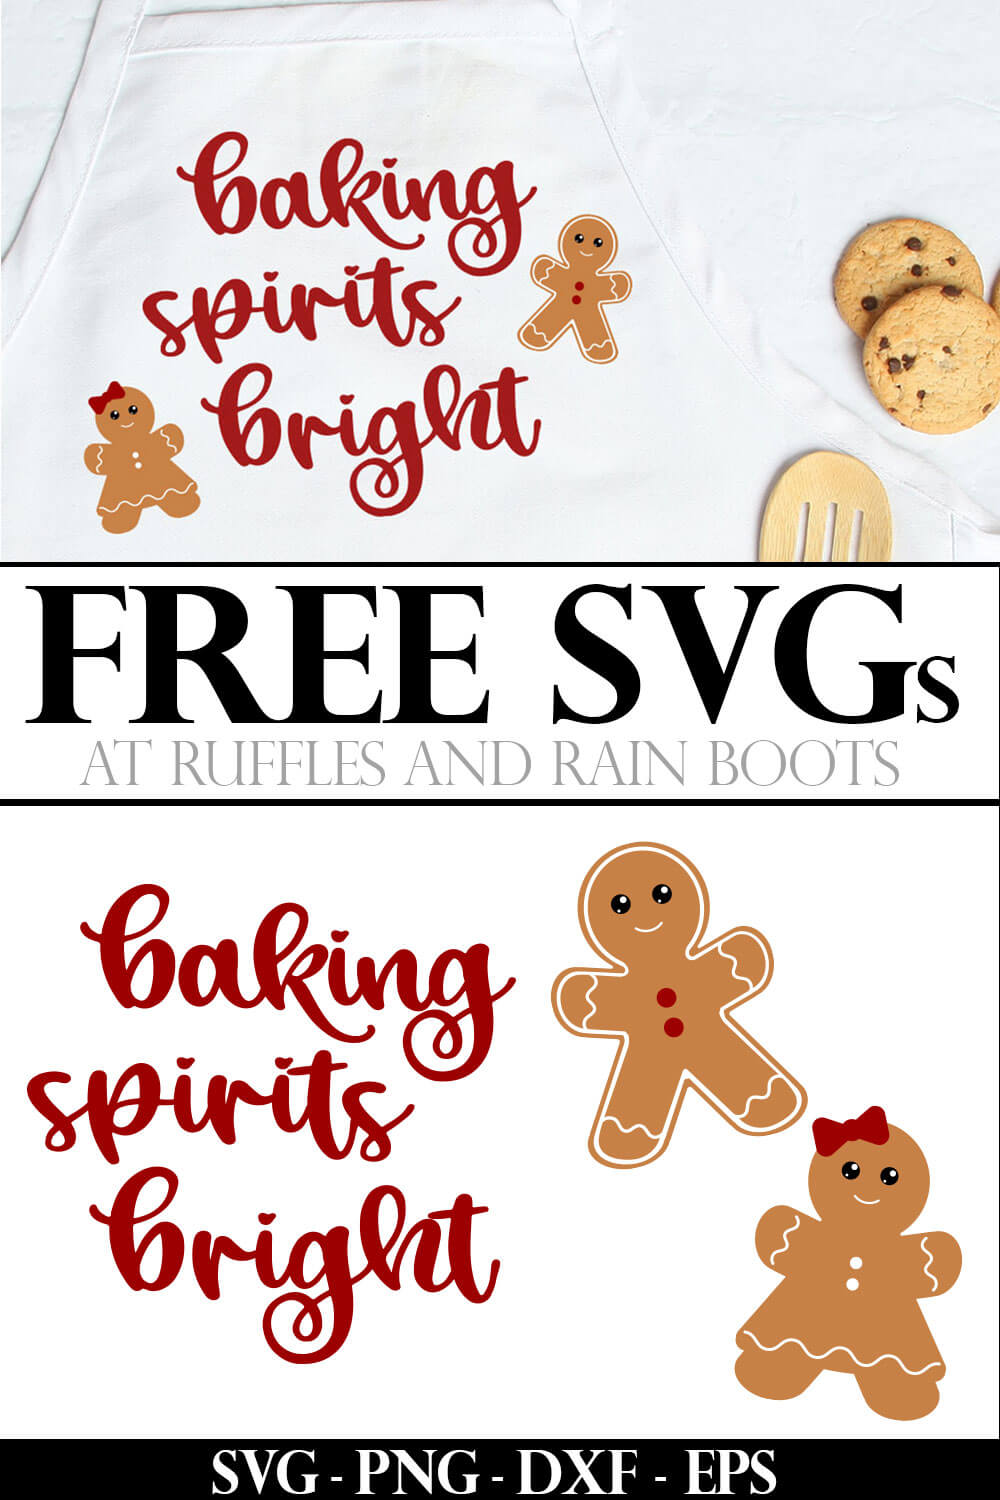 collage of Christmas apron made with baking spirits bright SVG and other holiday cut files with text which reads free SVG at Ruffles and Rain Boots